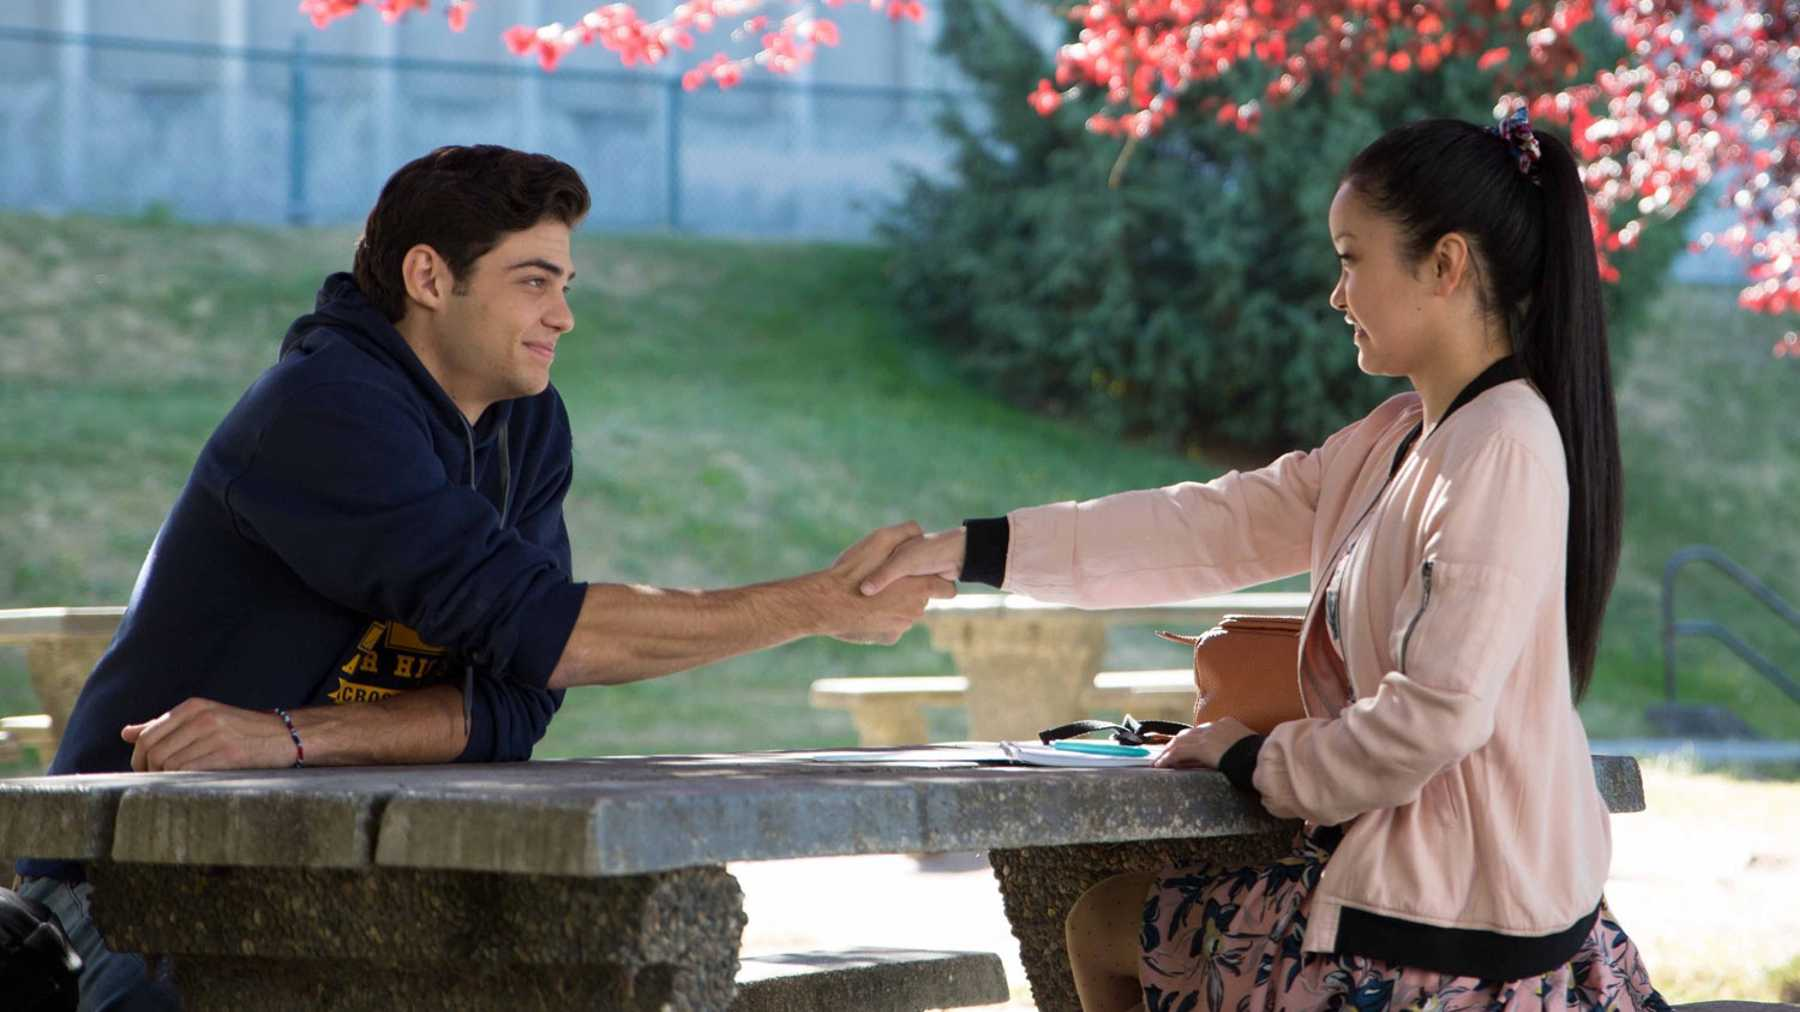 To All The Boys I've Loved Before - Best Movies To Watch At Home While Quarantined